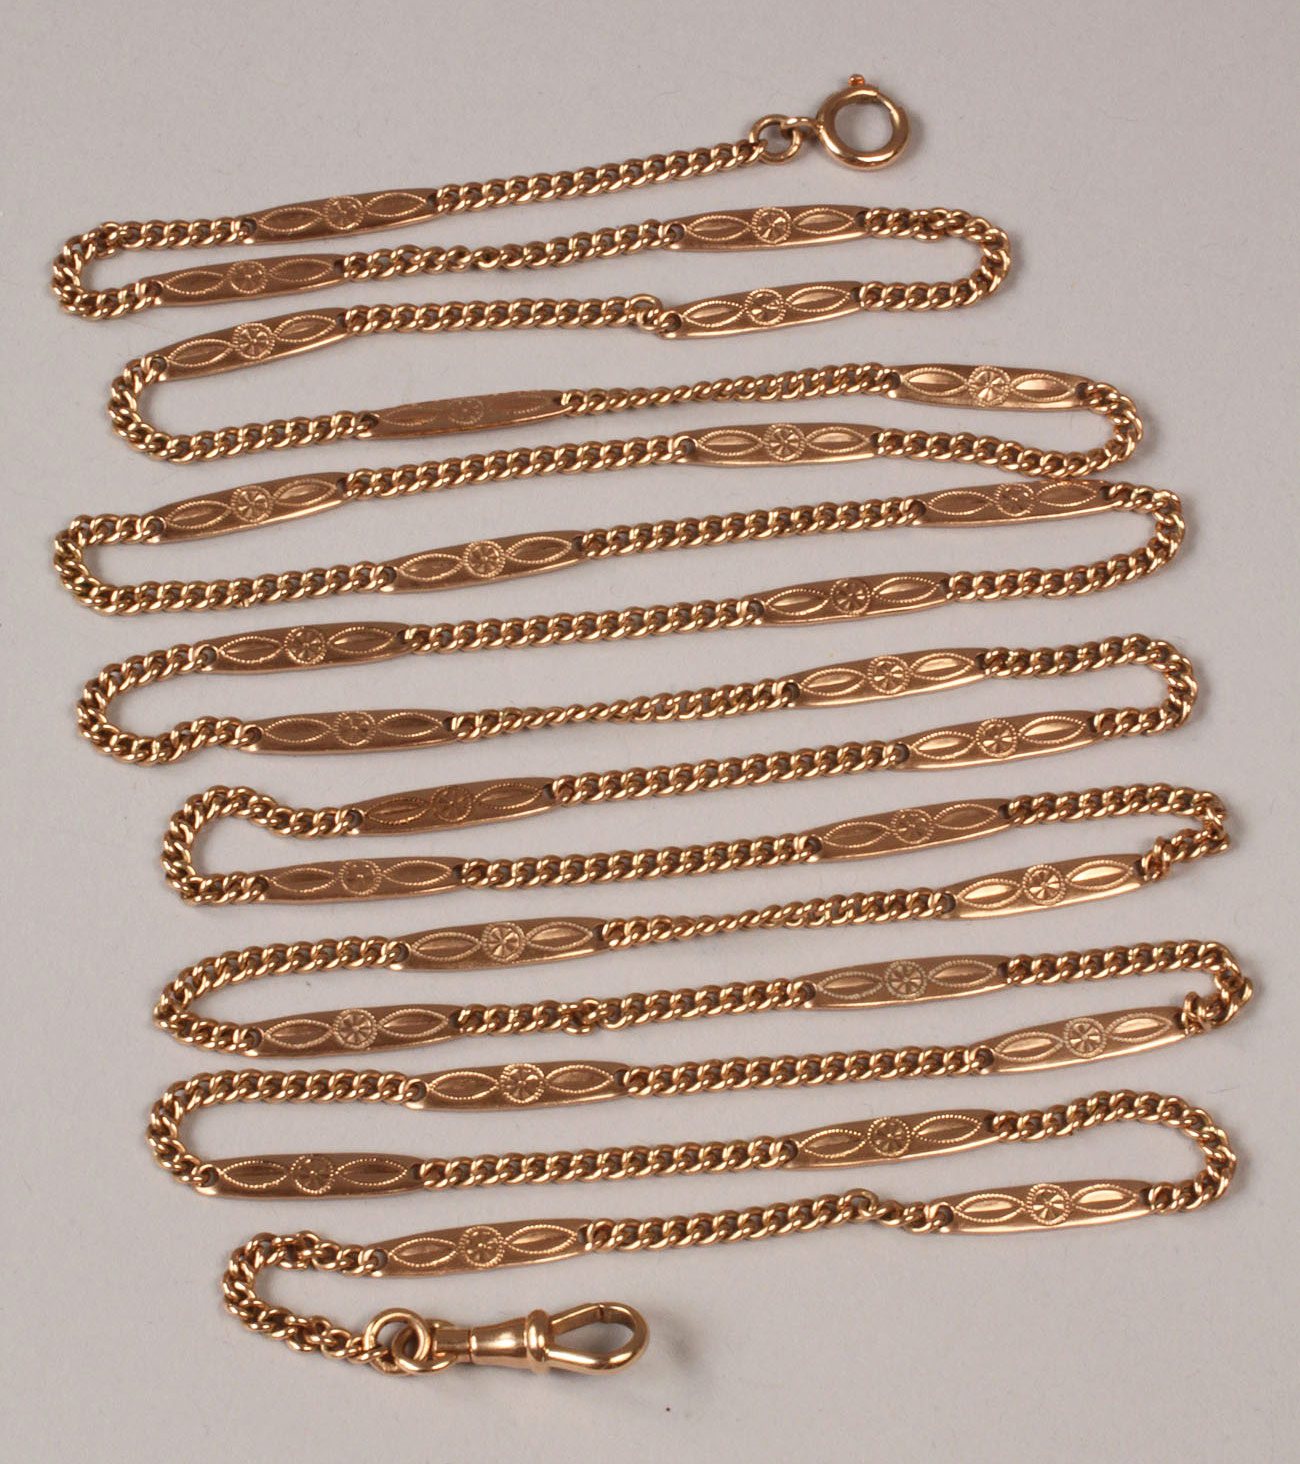 Lot 98: 14K Gold Watch Chain, engraved links